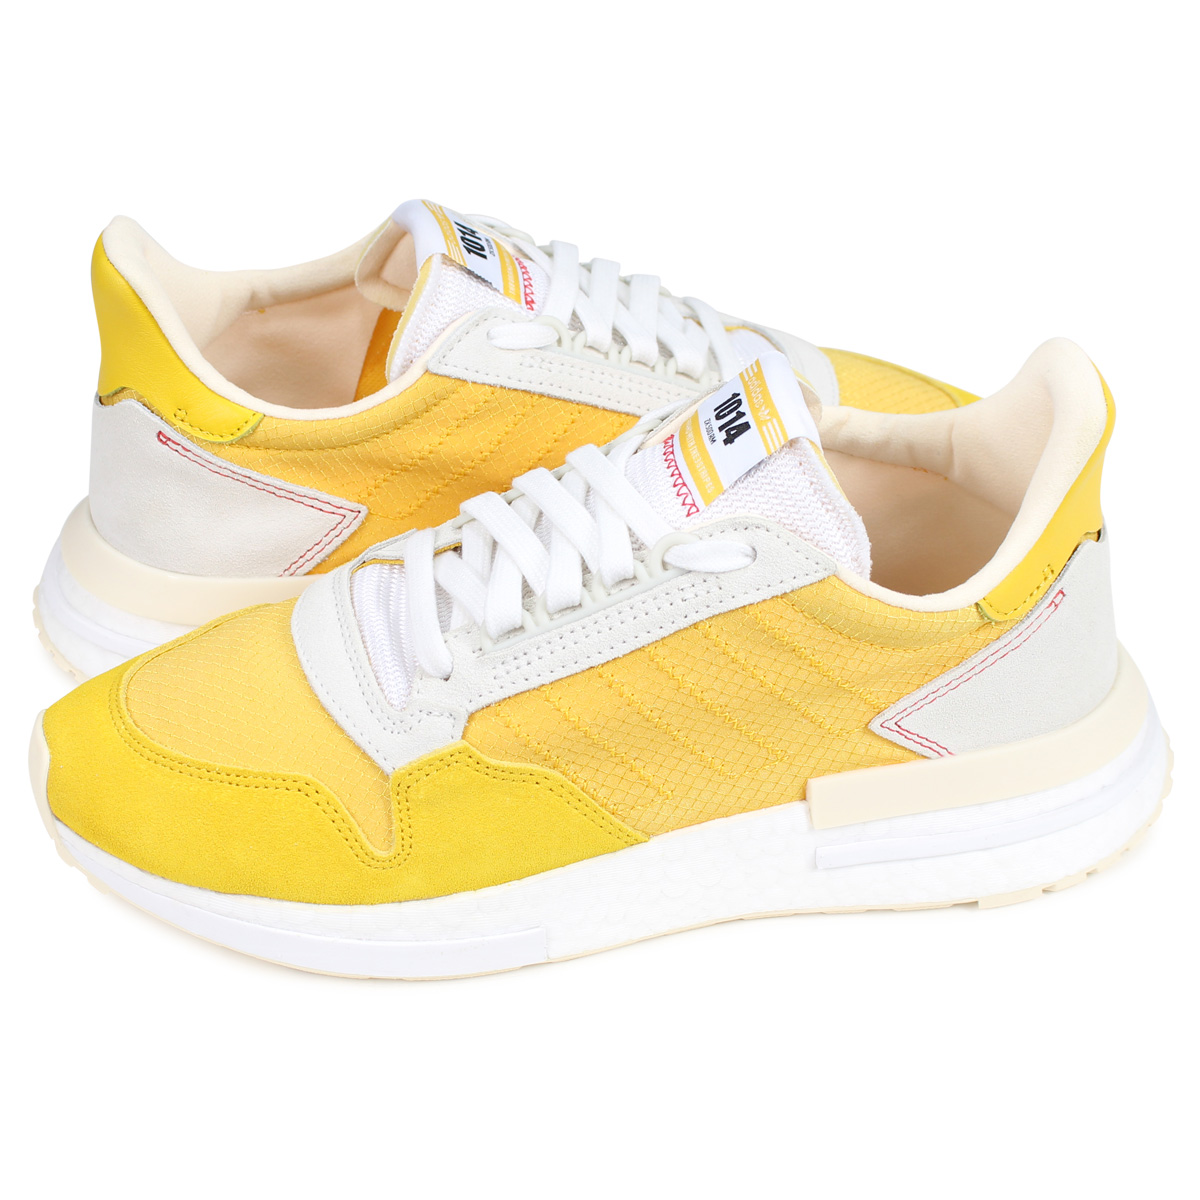 adidas Originals ZX 500 RM Adidas originals sneakers men yellow CG6860